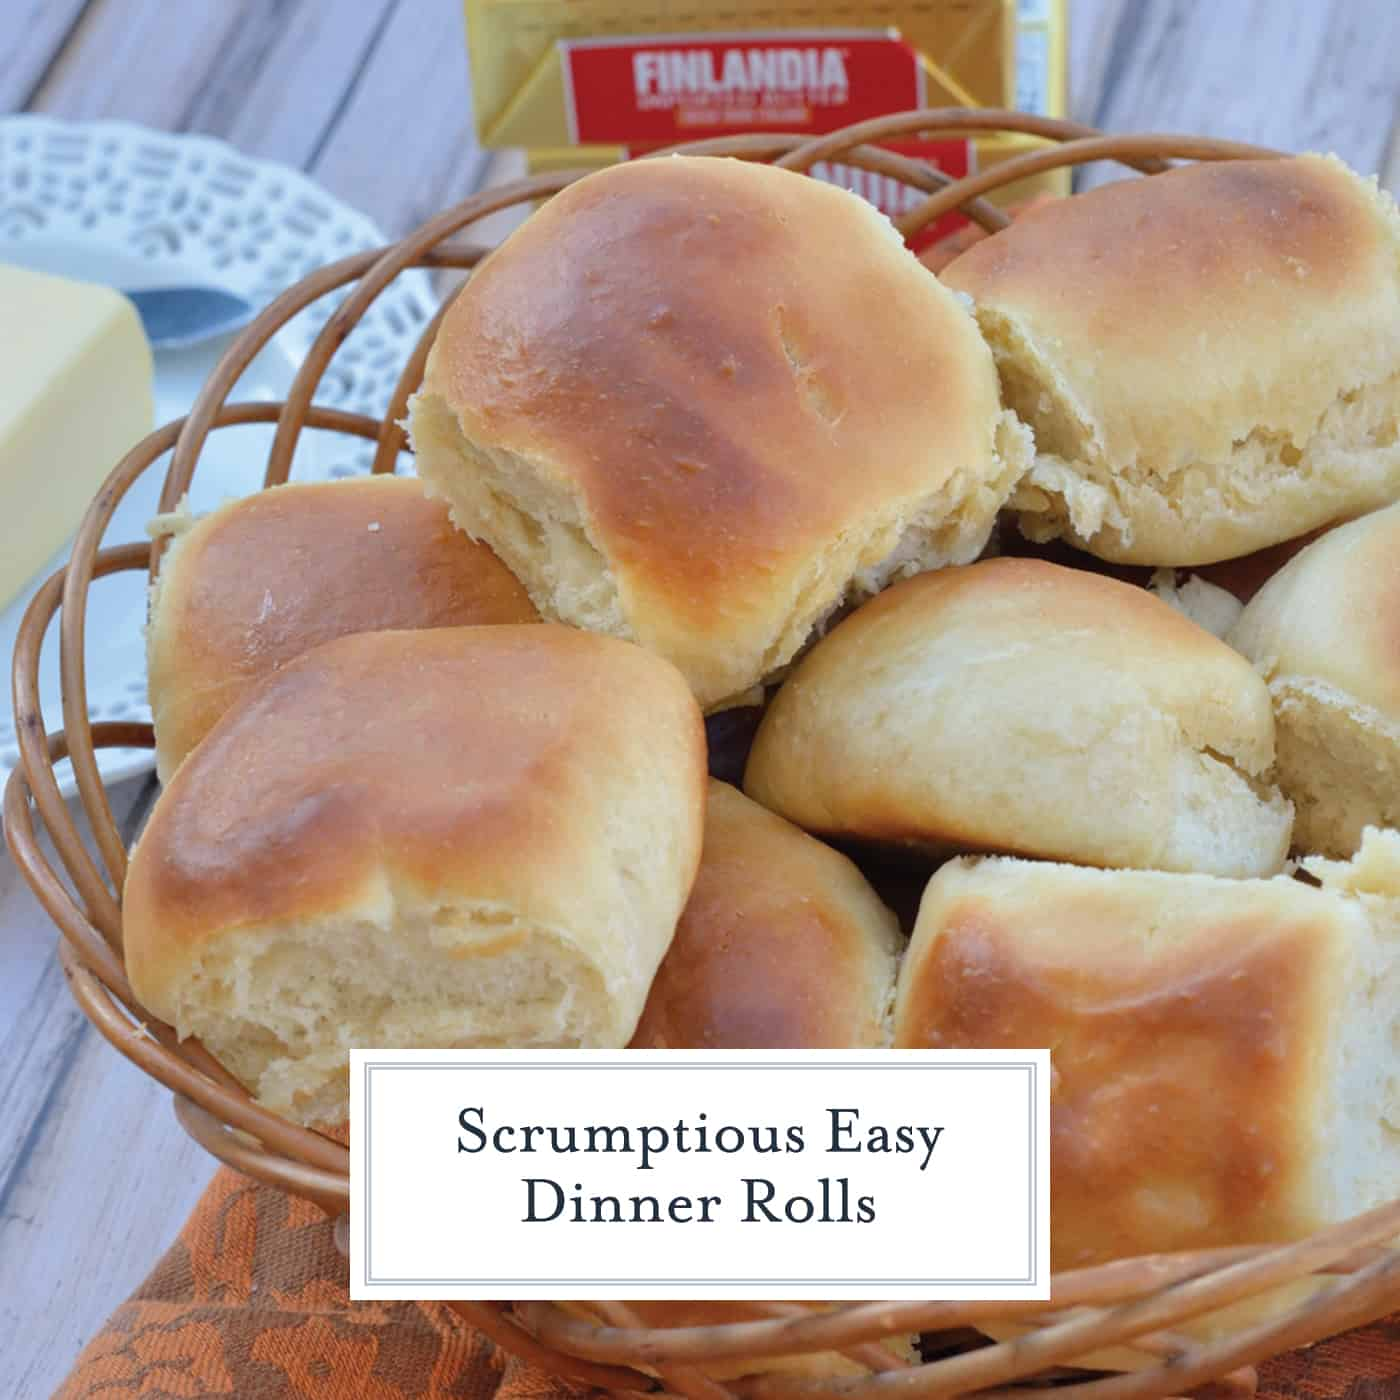 Soft, easy dinner rolls are easier to make than you think! Check out my speedy yeast rolls that you can make ahead and freeze. #dinnerrolls #yeastrolls #homemadebread www.savoryexperiments.com